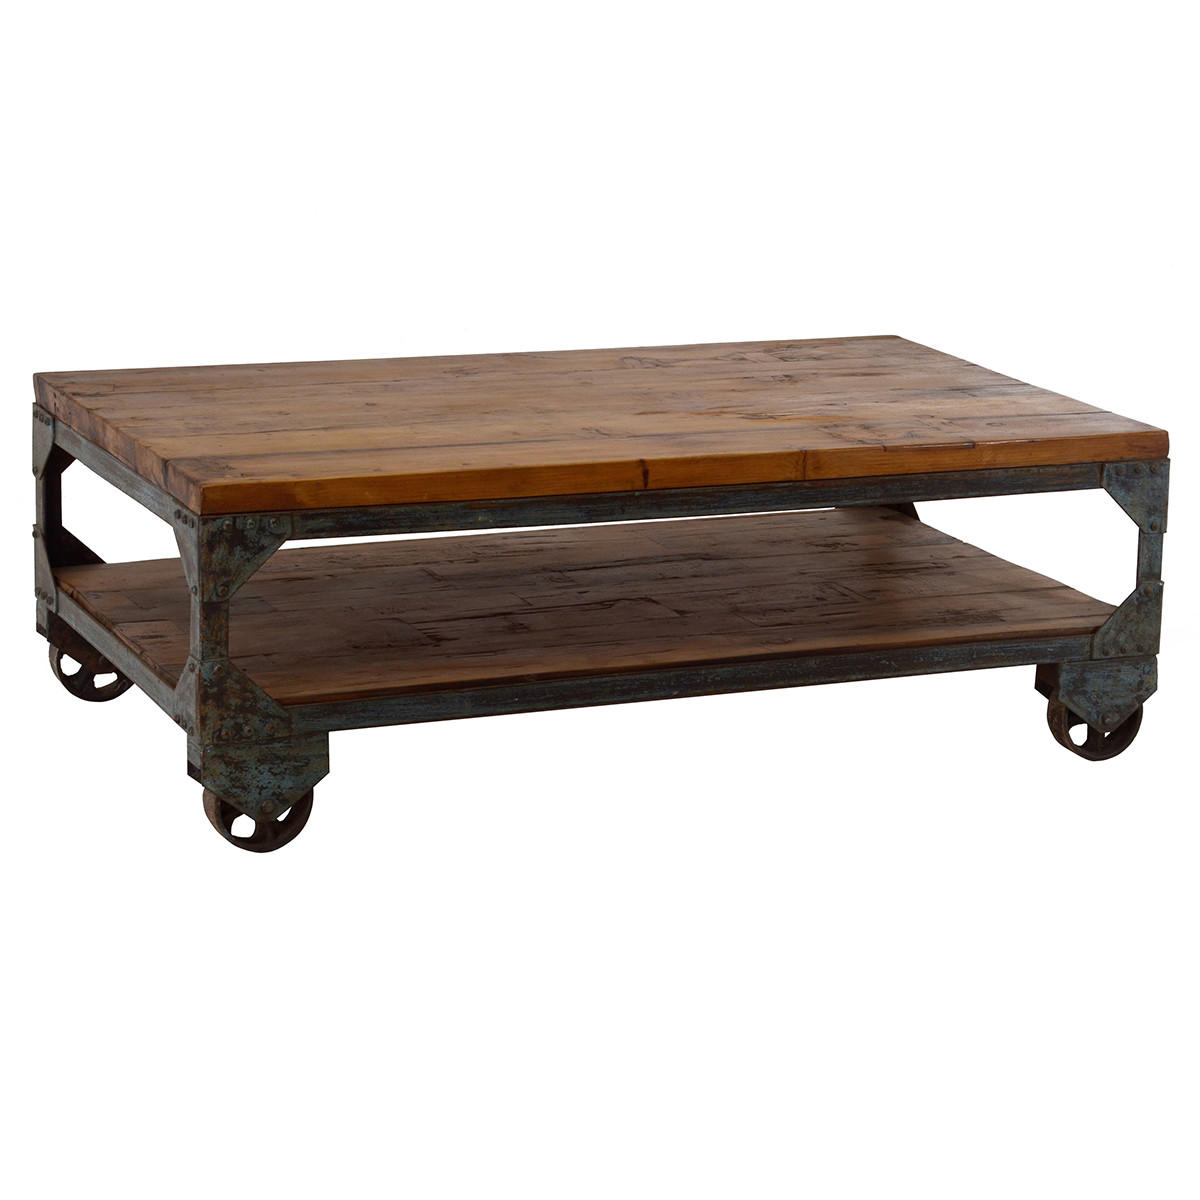 Iron wood coffee table on wheels from wrightwood furniture for Coffee tables on wheels